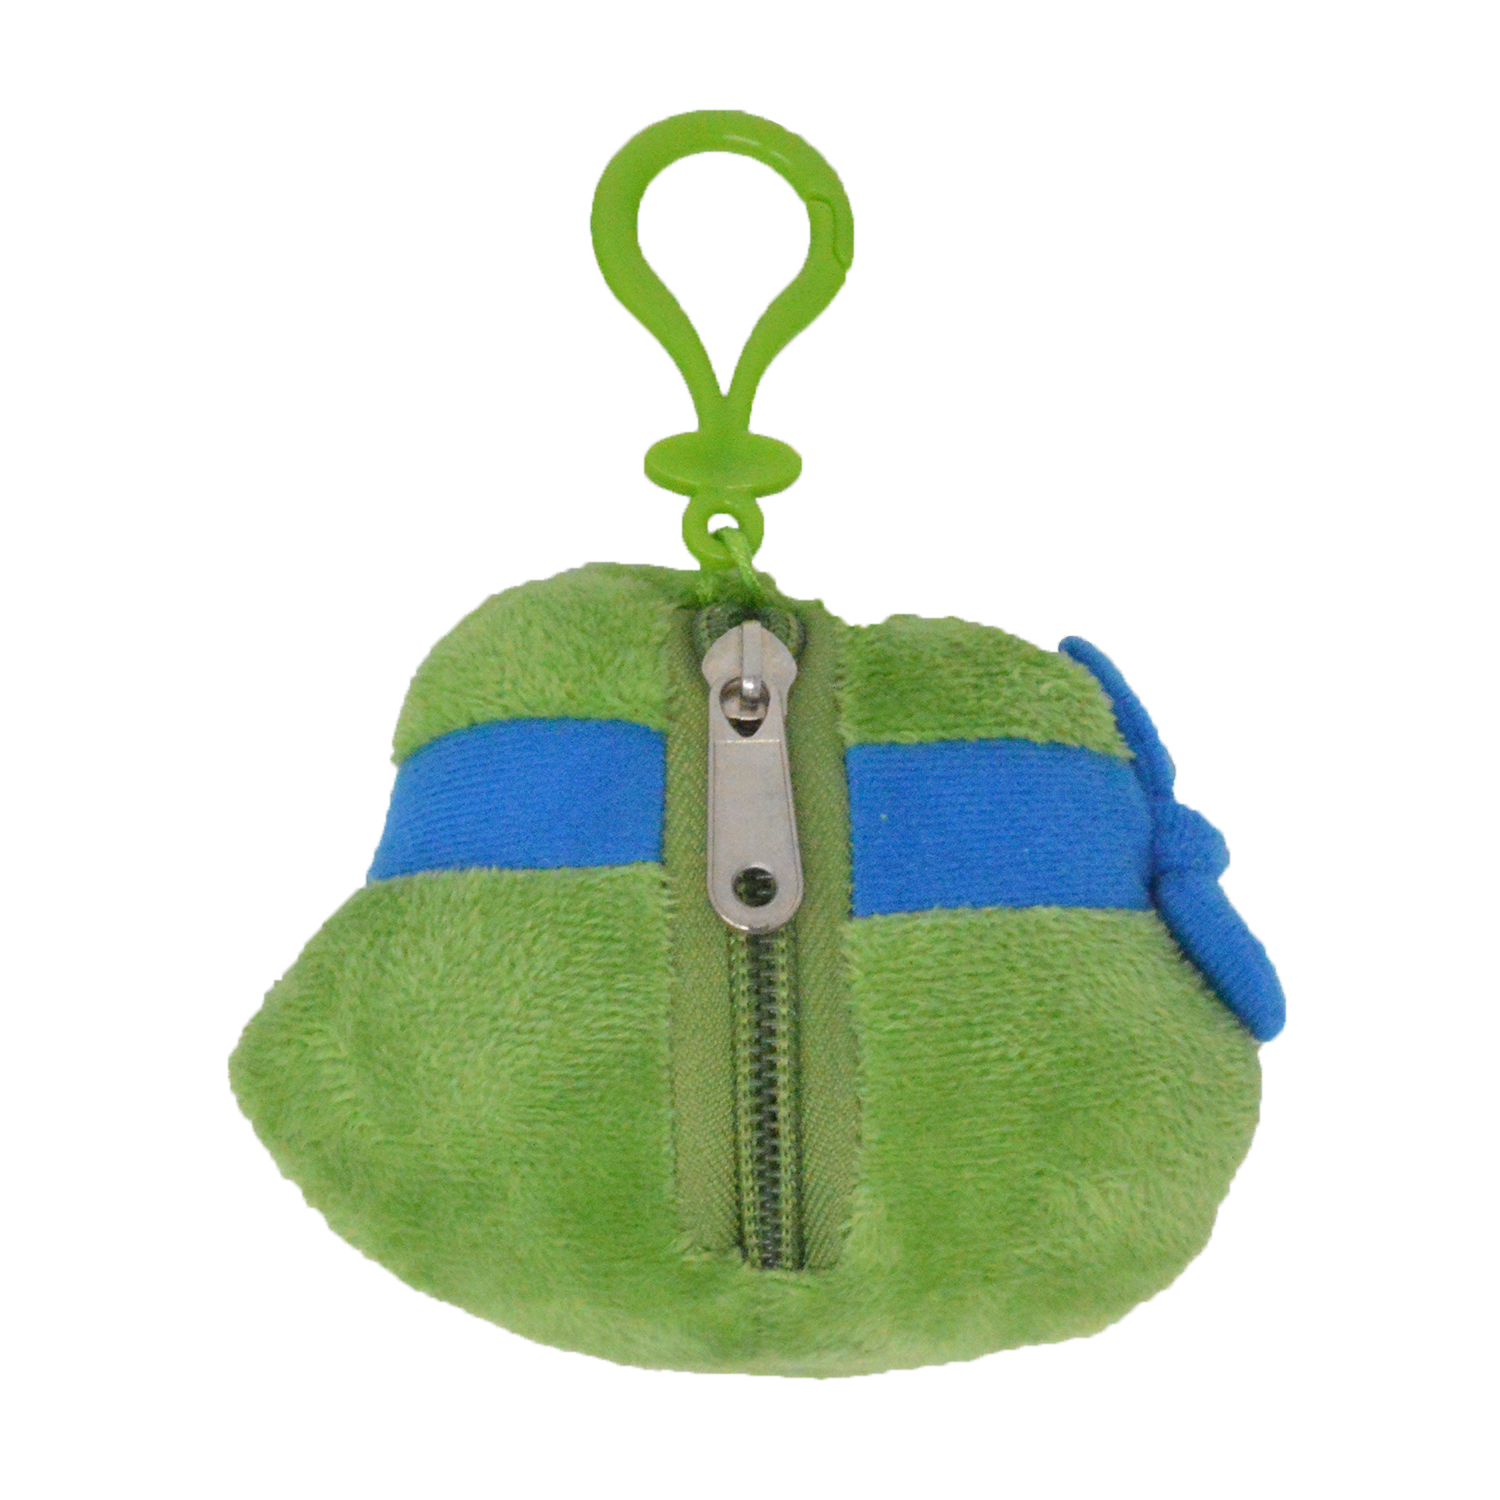 Cartoon-Plush-Coin-Clip-Toy-Bag-with-Zipper-for-Backpacks-Multiple-Styles thumbnail 36